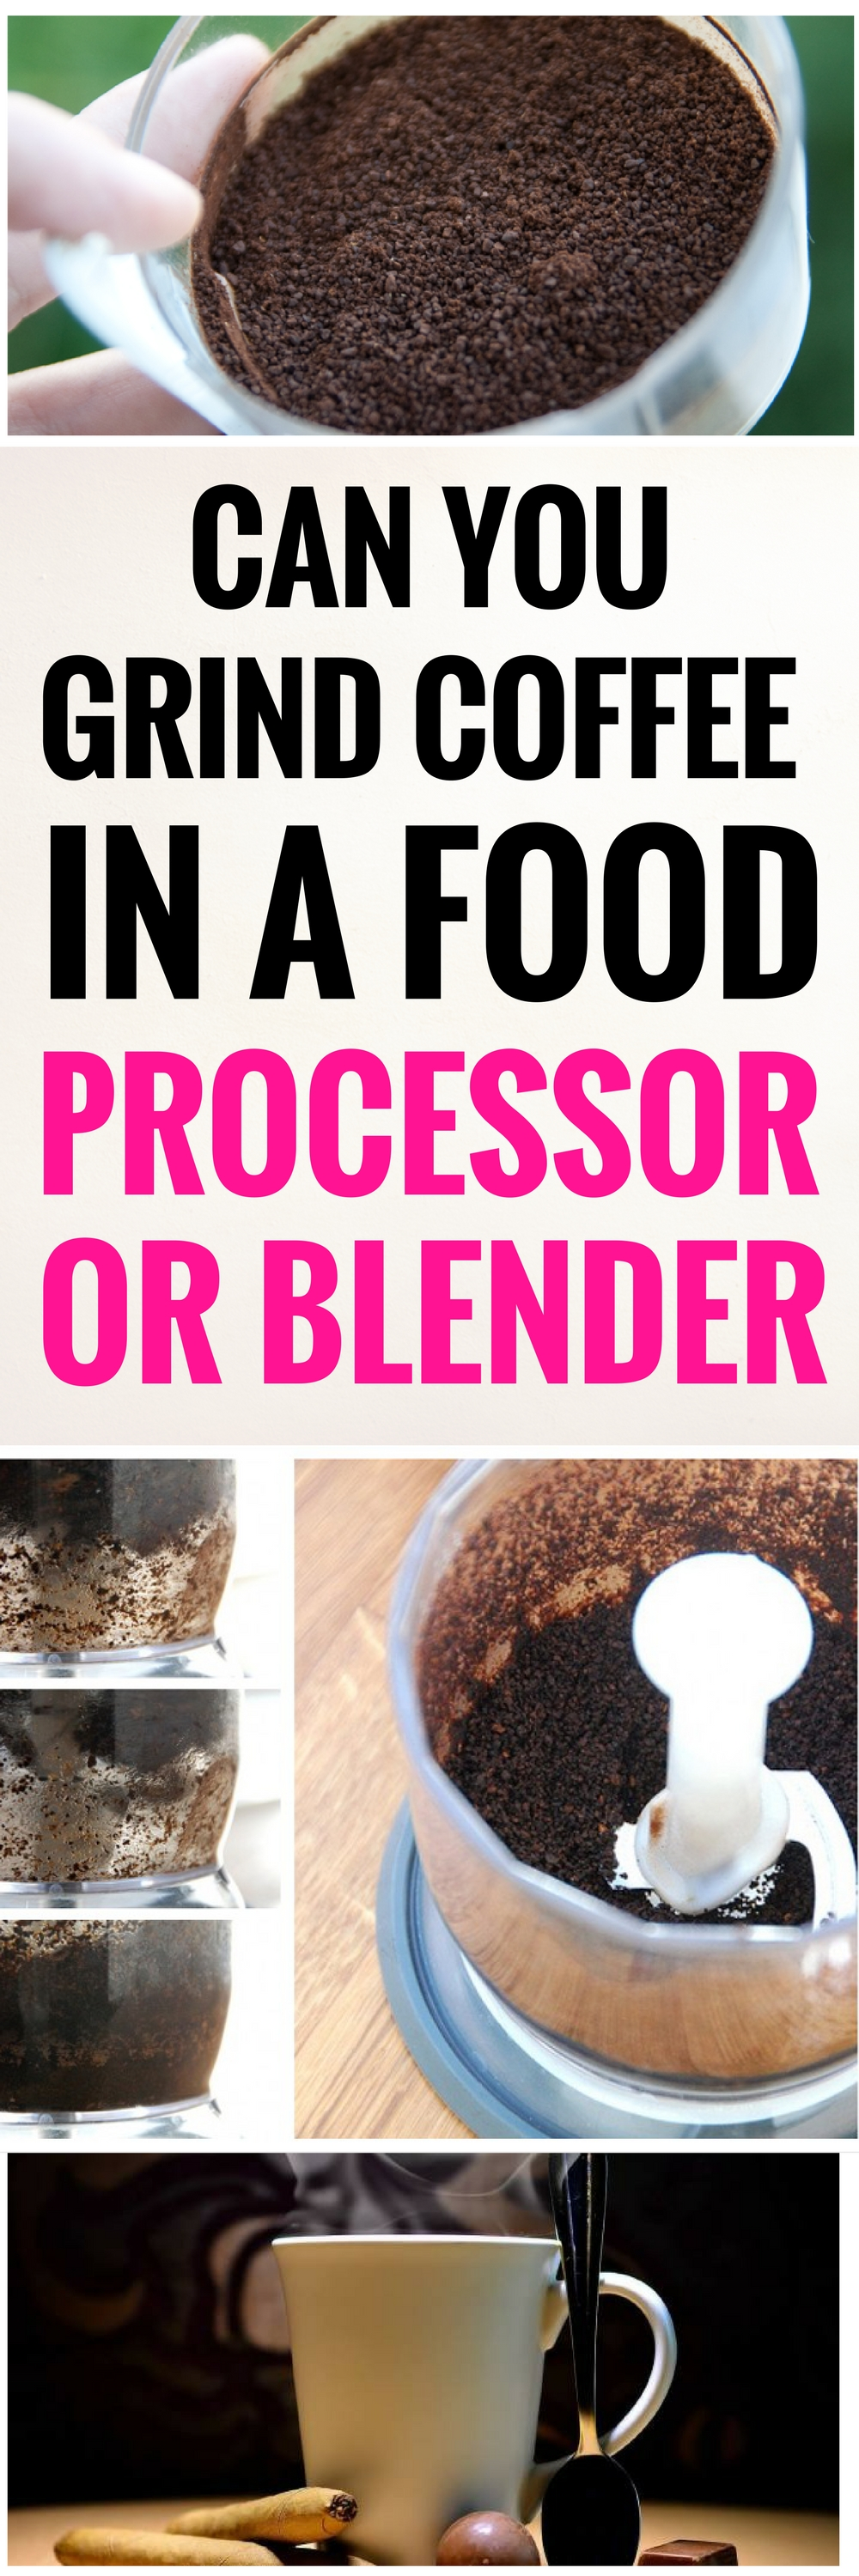 can you grind coffee with blender